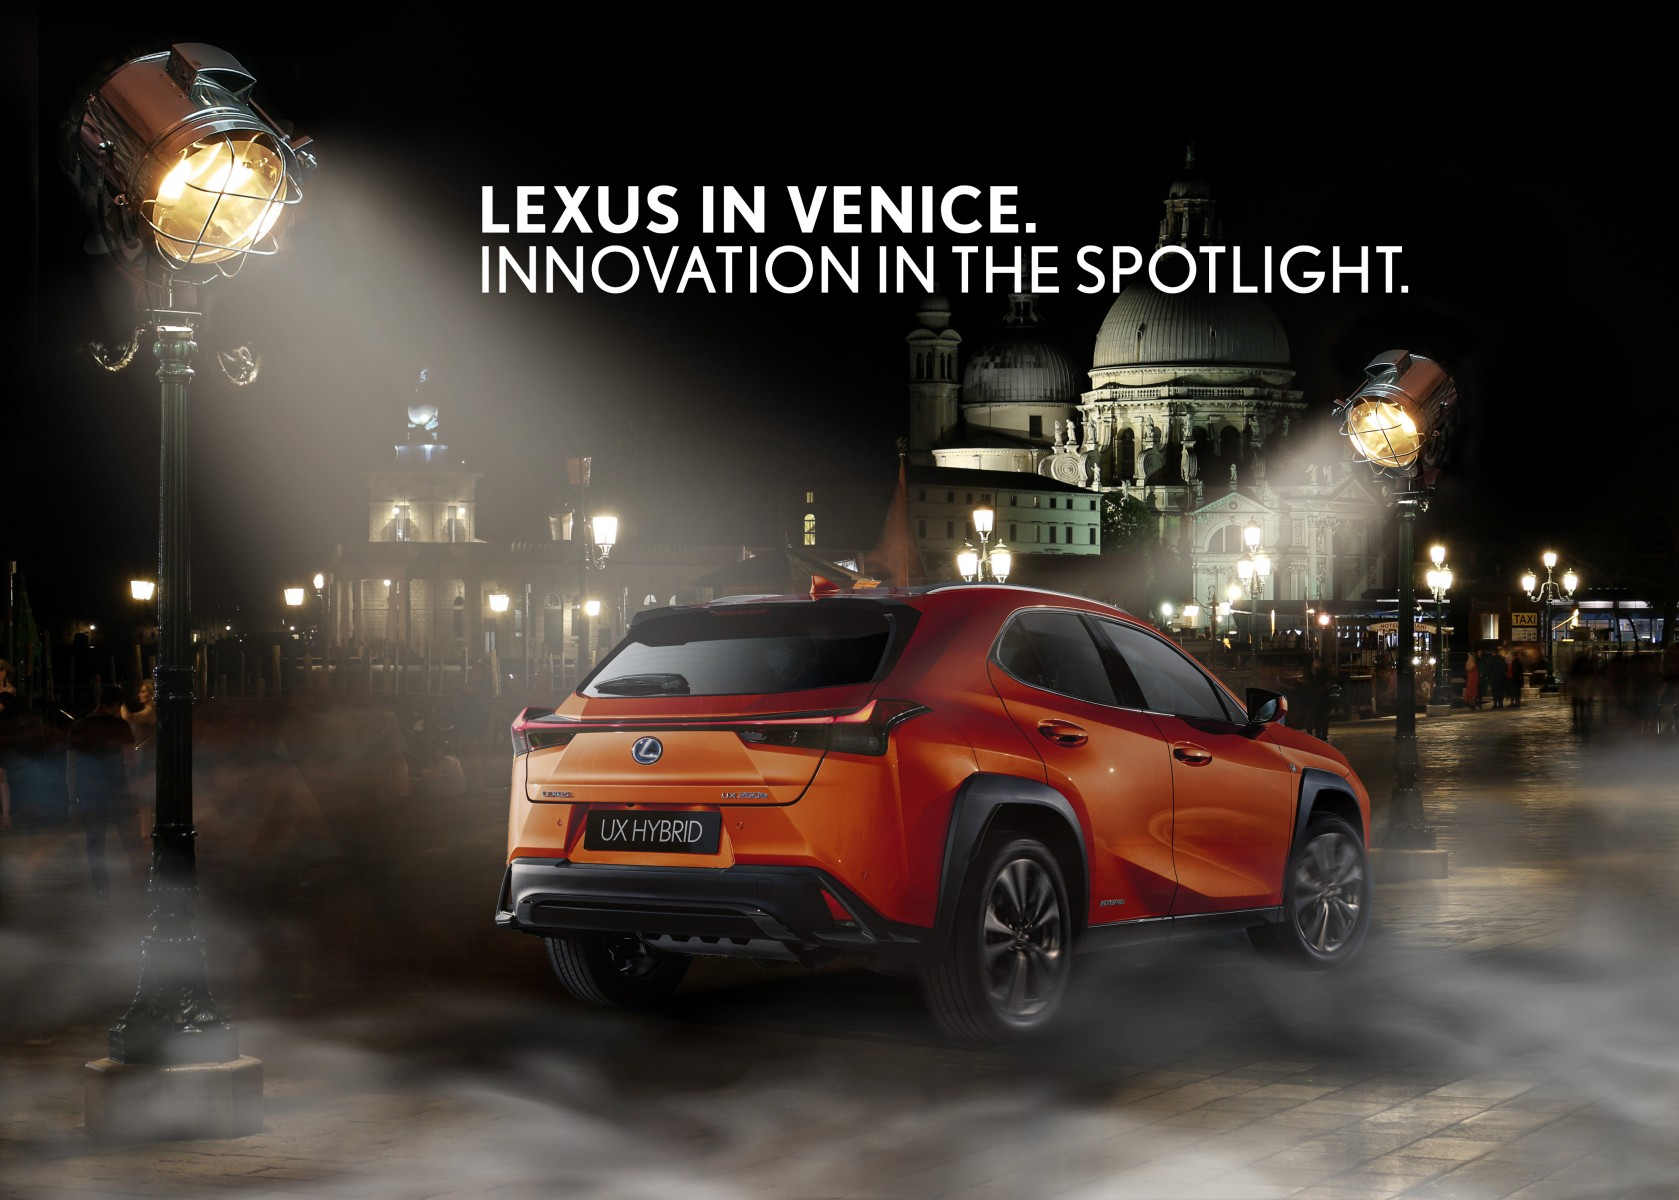 Lexus is a Sponsor of the 76th Venice International Film Festival